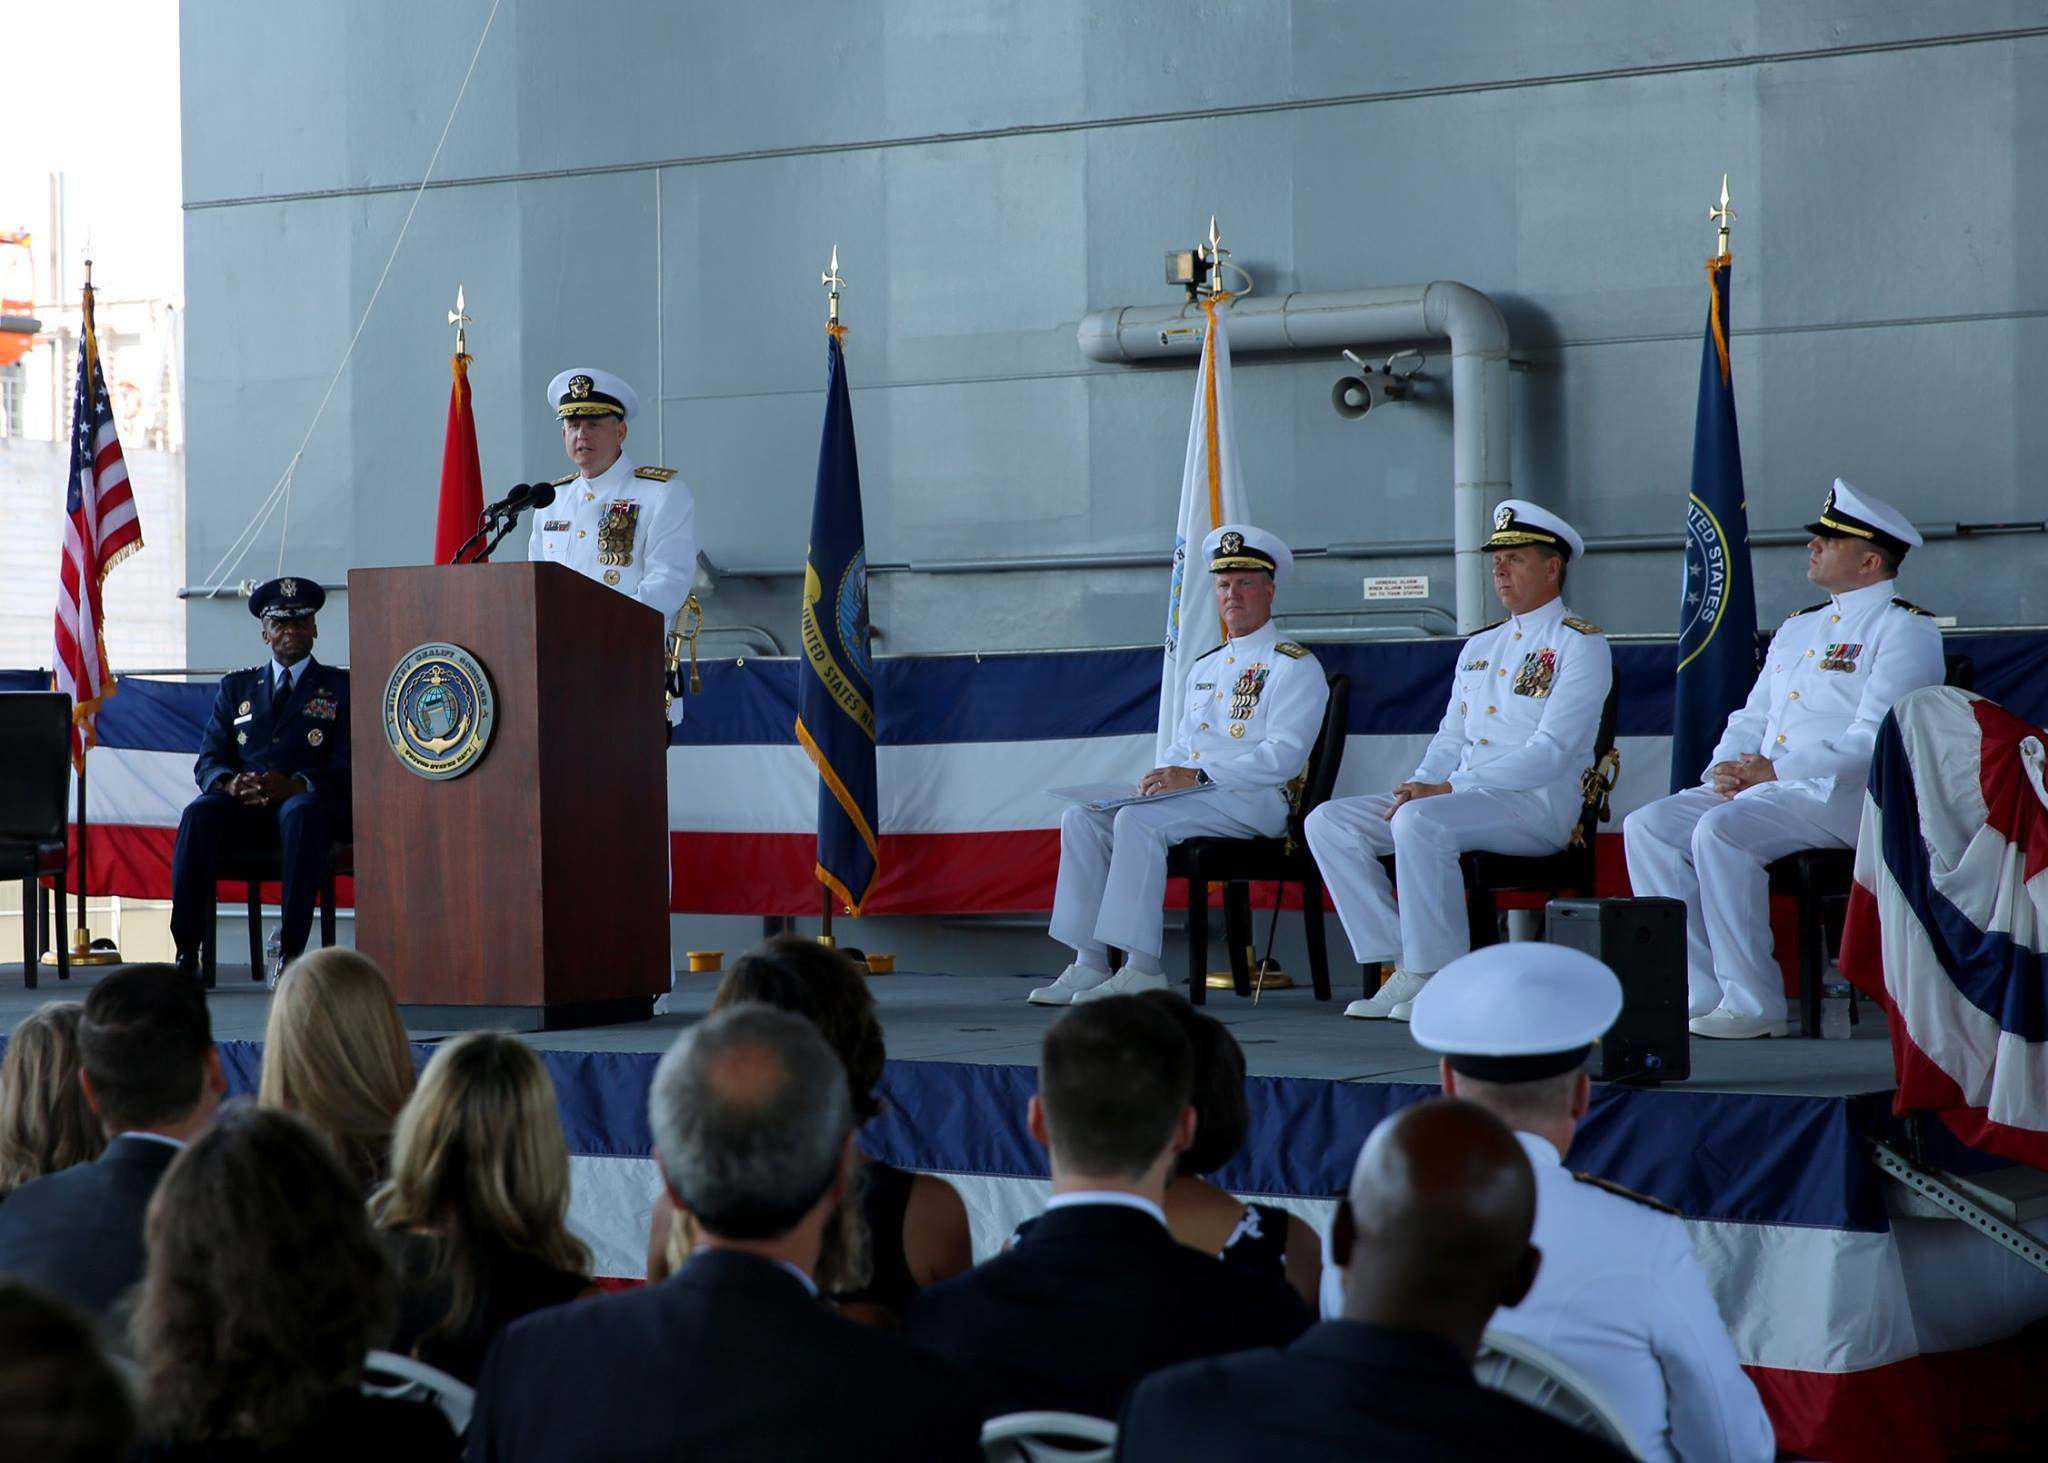 Rear Adm. Dee Mewbourne addresses the audience at Military Sealift Command's change of command ceremony aboard USNS Lewis B. Puller (T-ESB 3) on Aug. 25, 2016. US Navy photo.